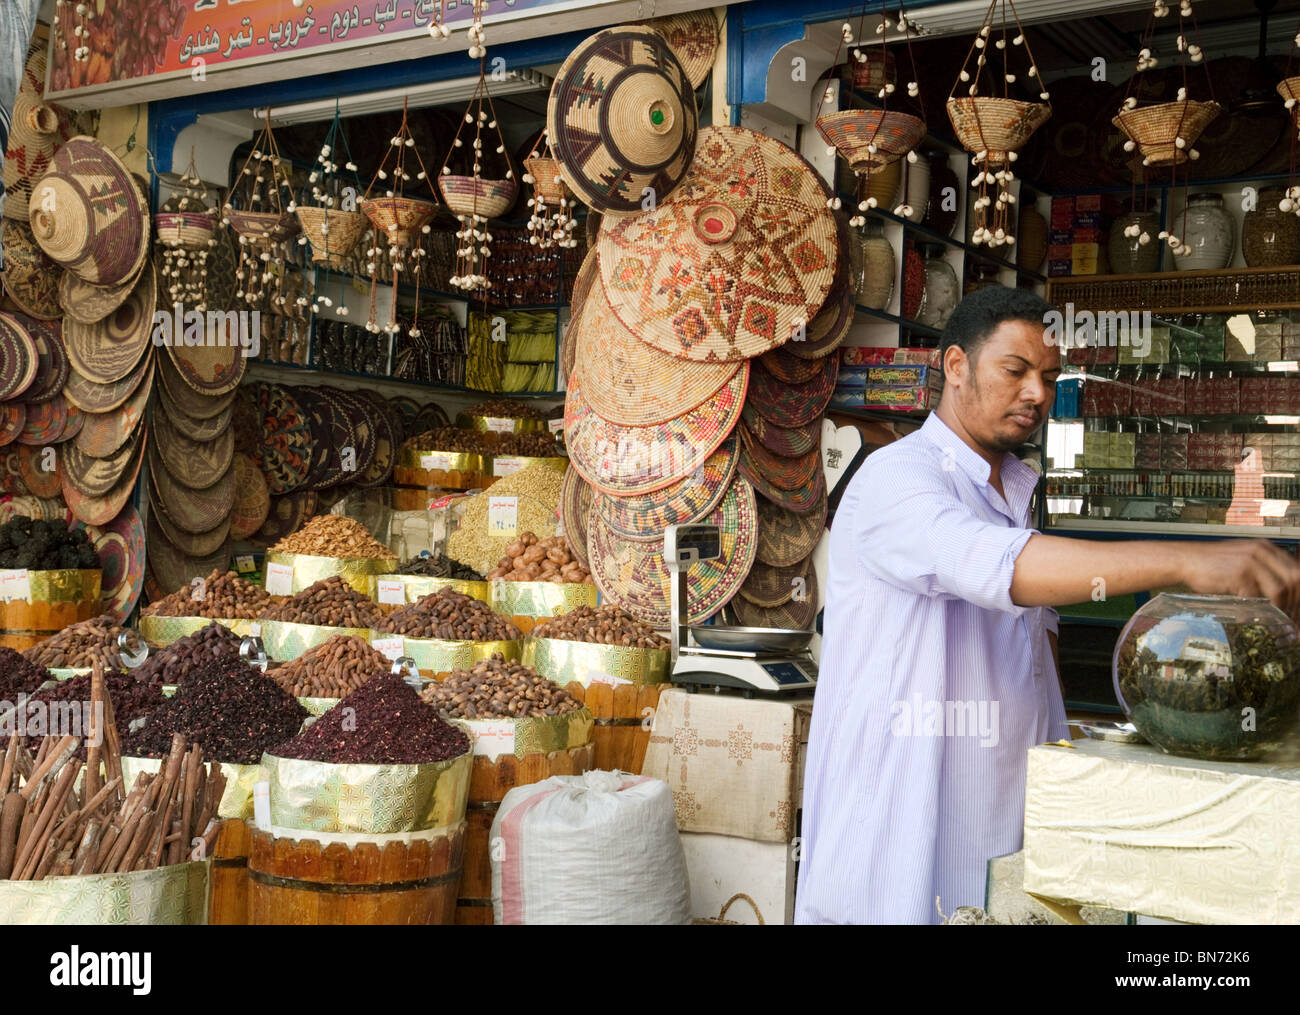 Spice merchant in his store, The market, Aswan, Upper Egypt - Stock Image